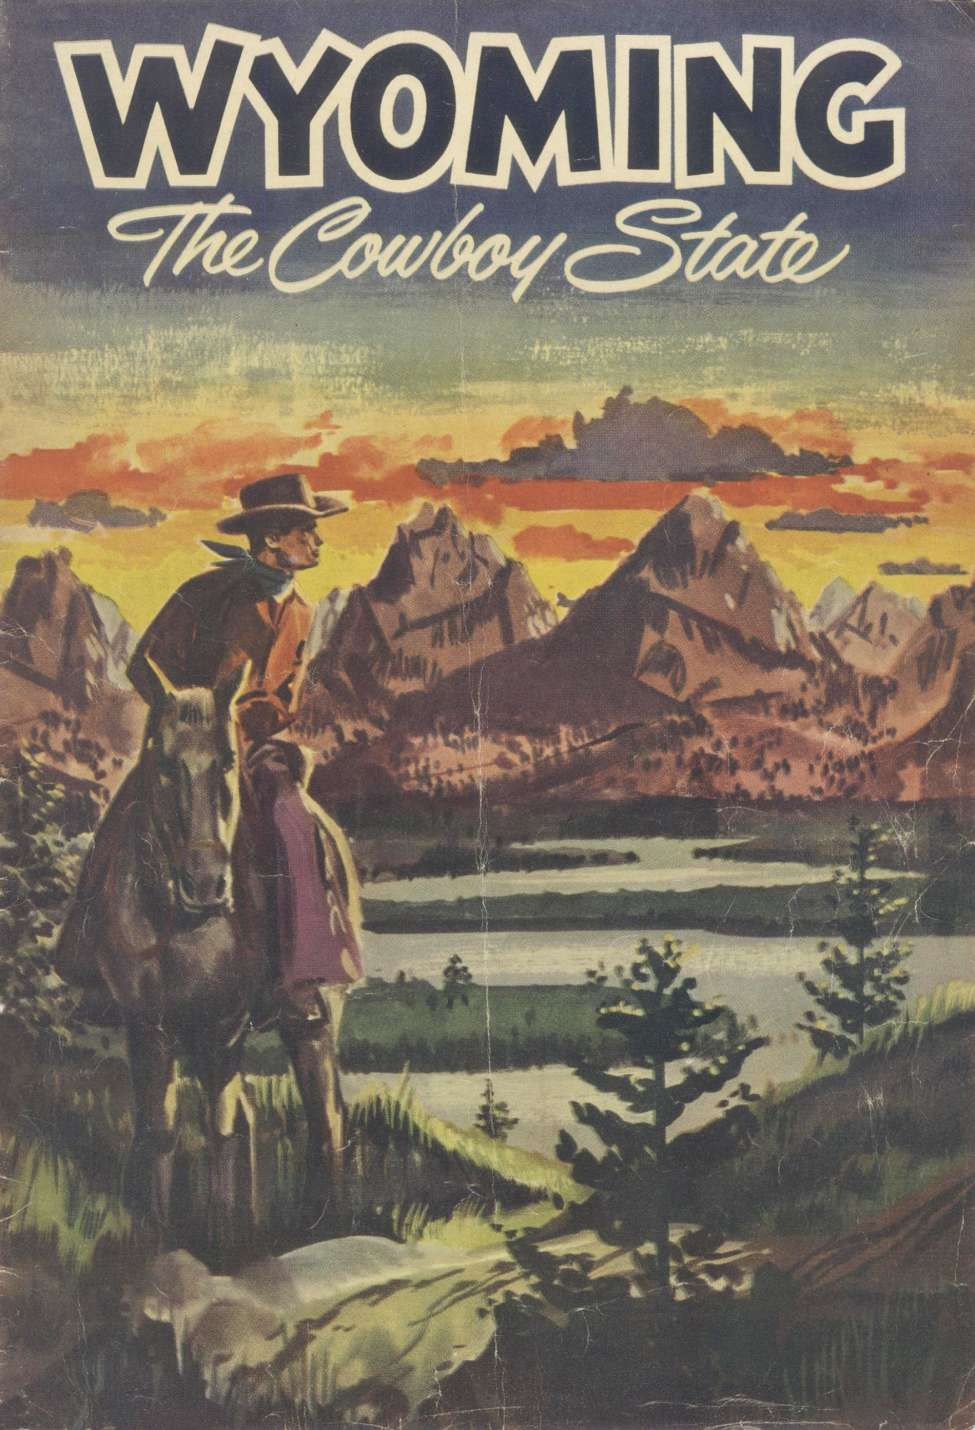 Comic Book Cover For Wyoming The Cowboy State (A)